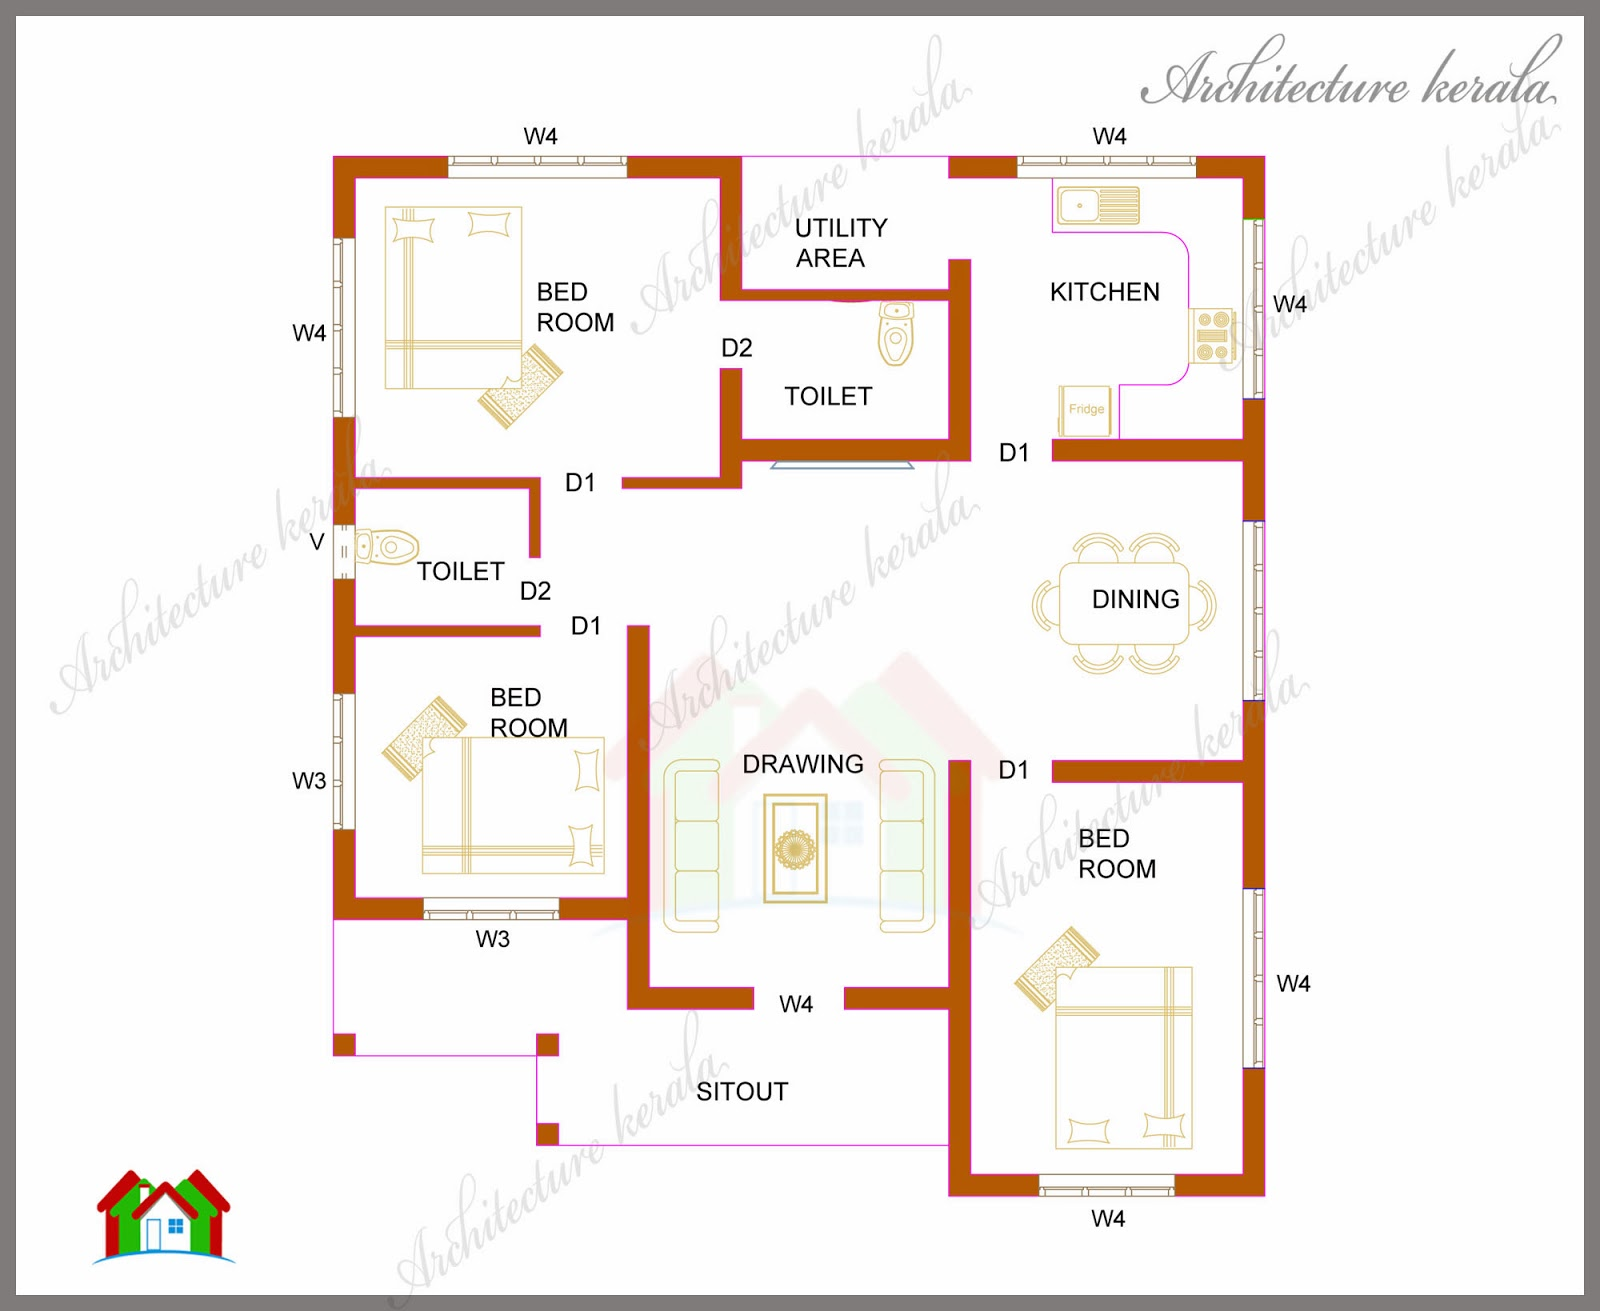 Three bedrooms in 1200 square feet kerala house plan for Home floor plans with estimated cost to build